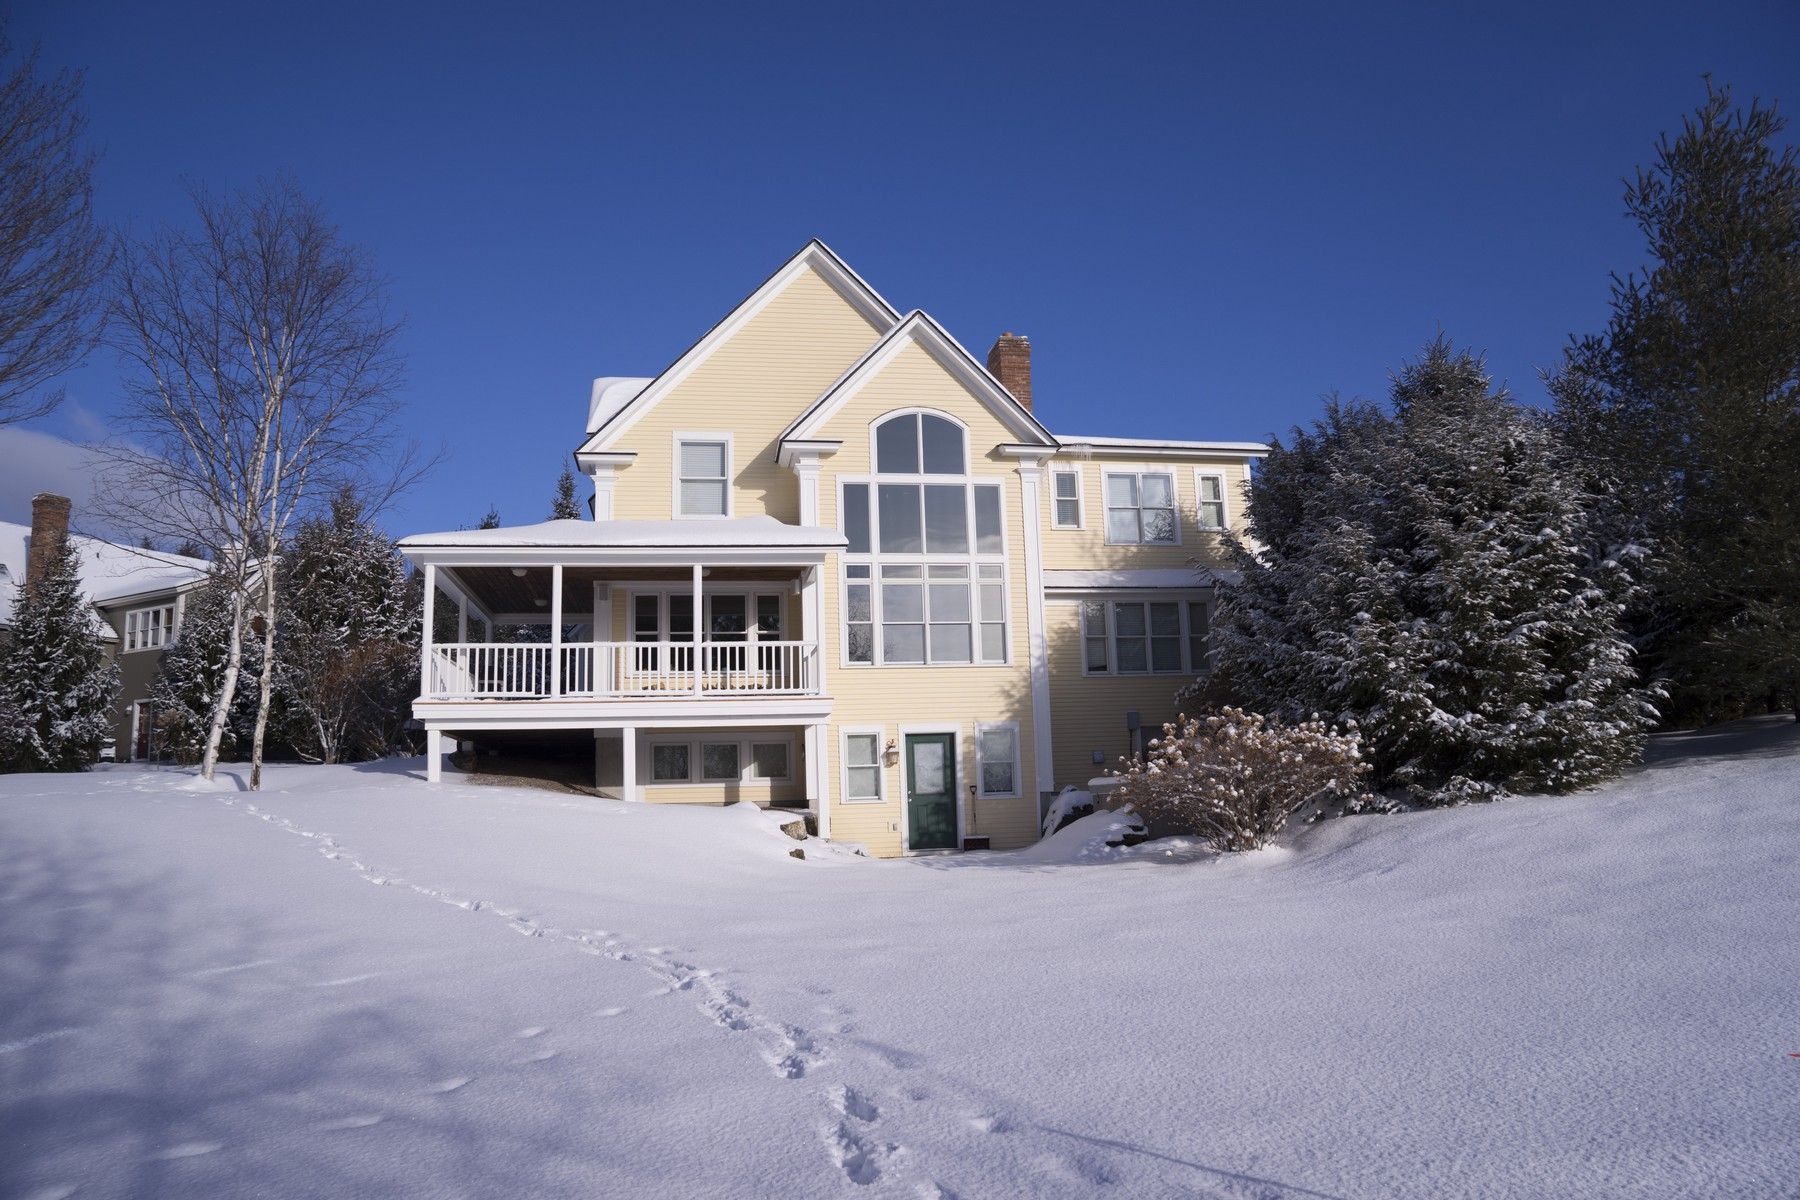 Single Family Home for Sale at 41 Hunger, Stowe 41 Hunger Ln Stowe, Vermont 05672 United States